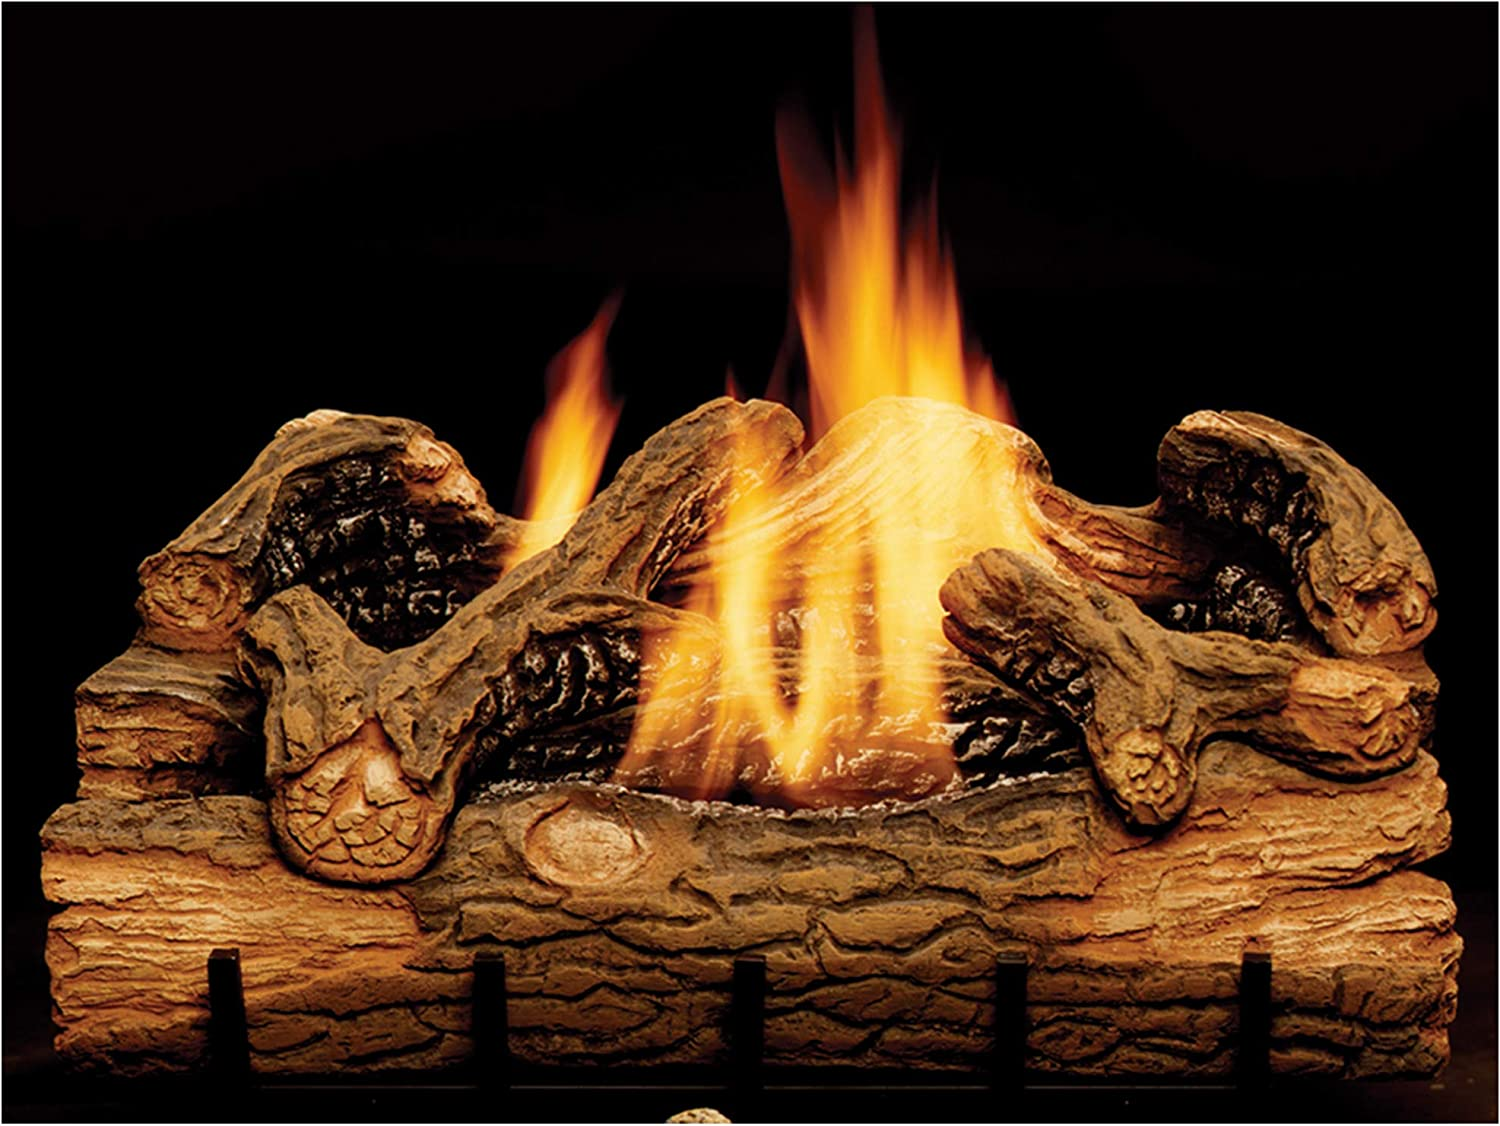 Monessen Charred Japan Maker New Hickory Ventless Gas Logs Recommended Control Manual 24 -